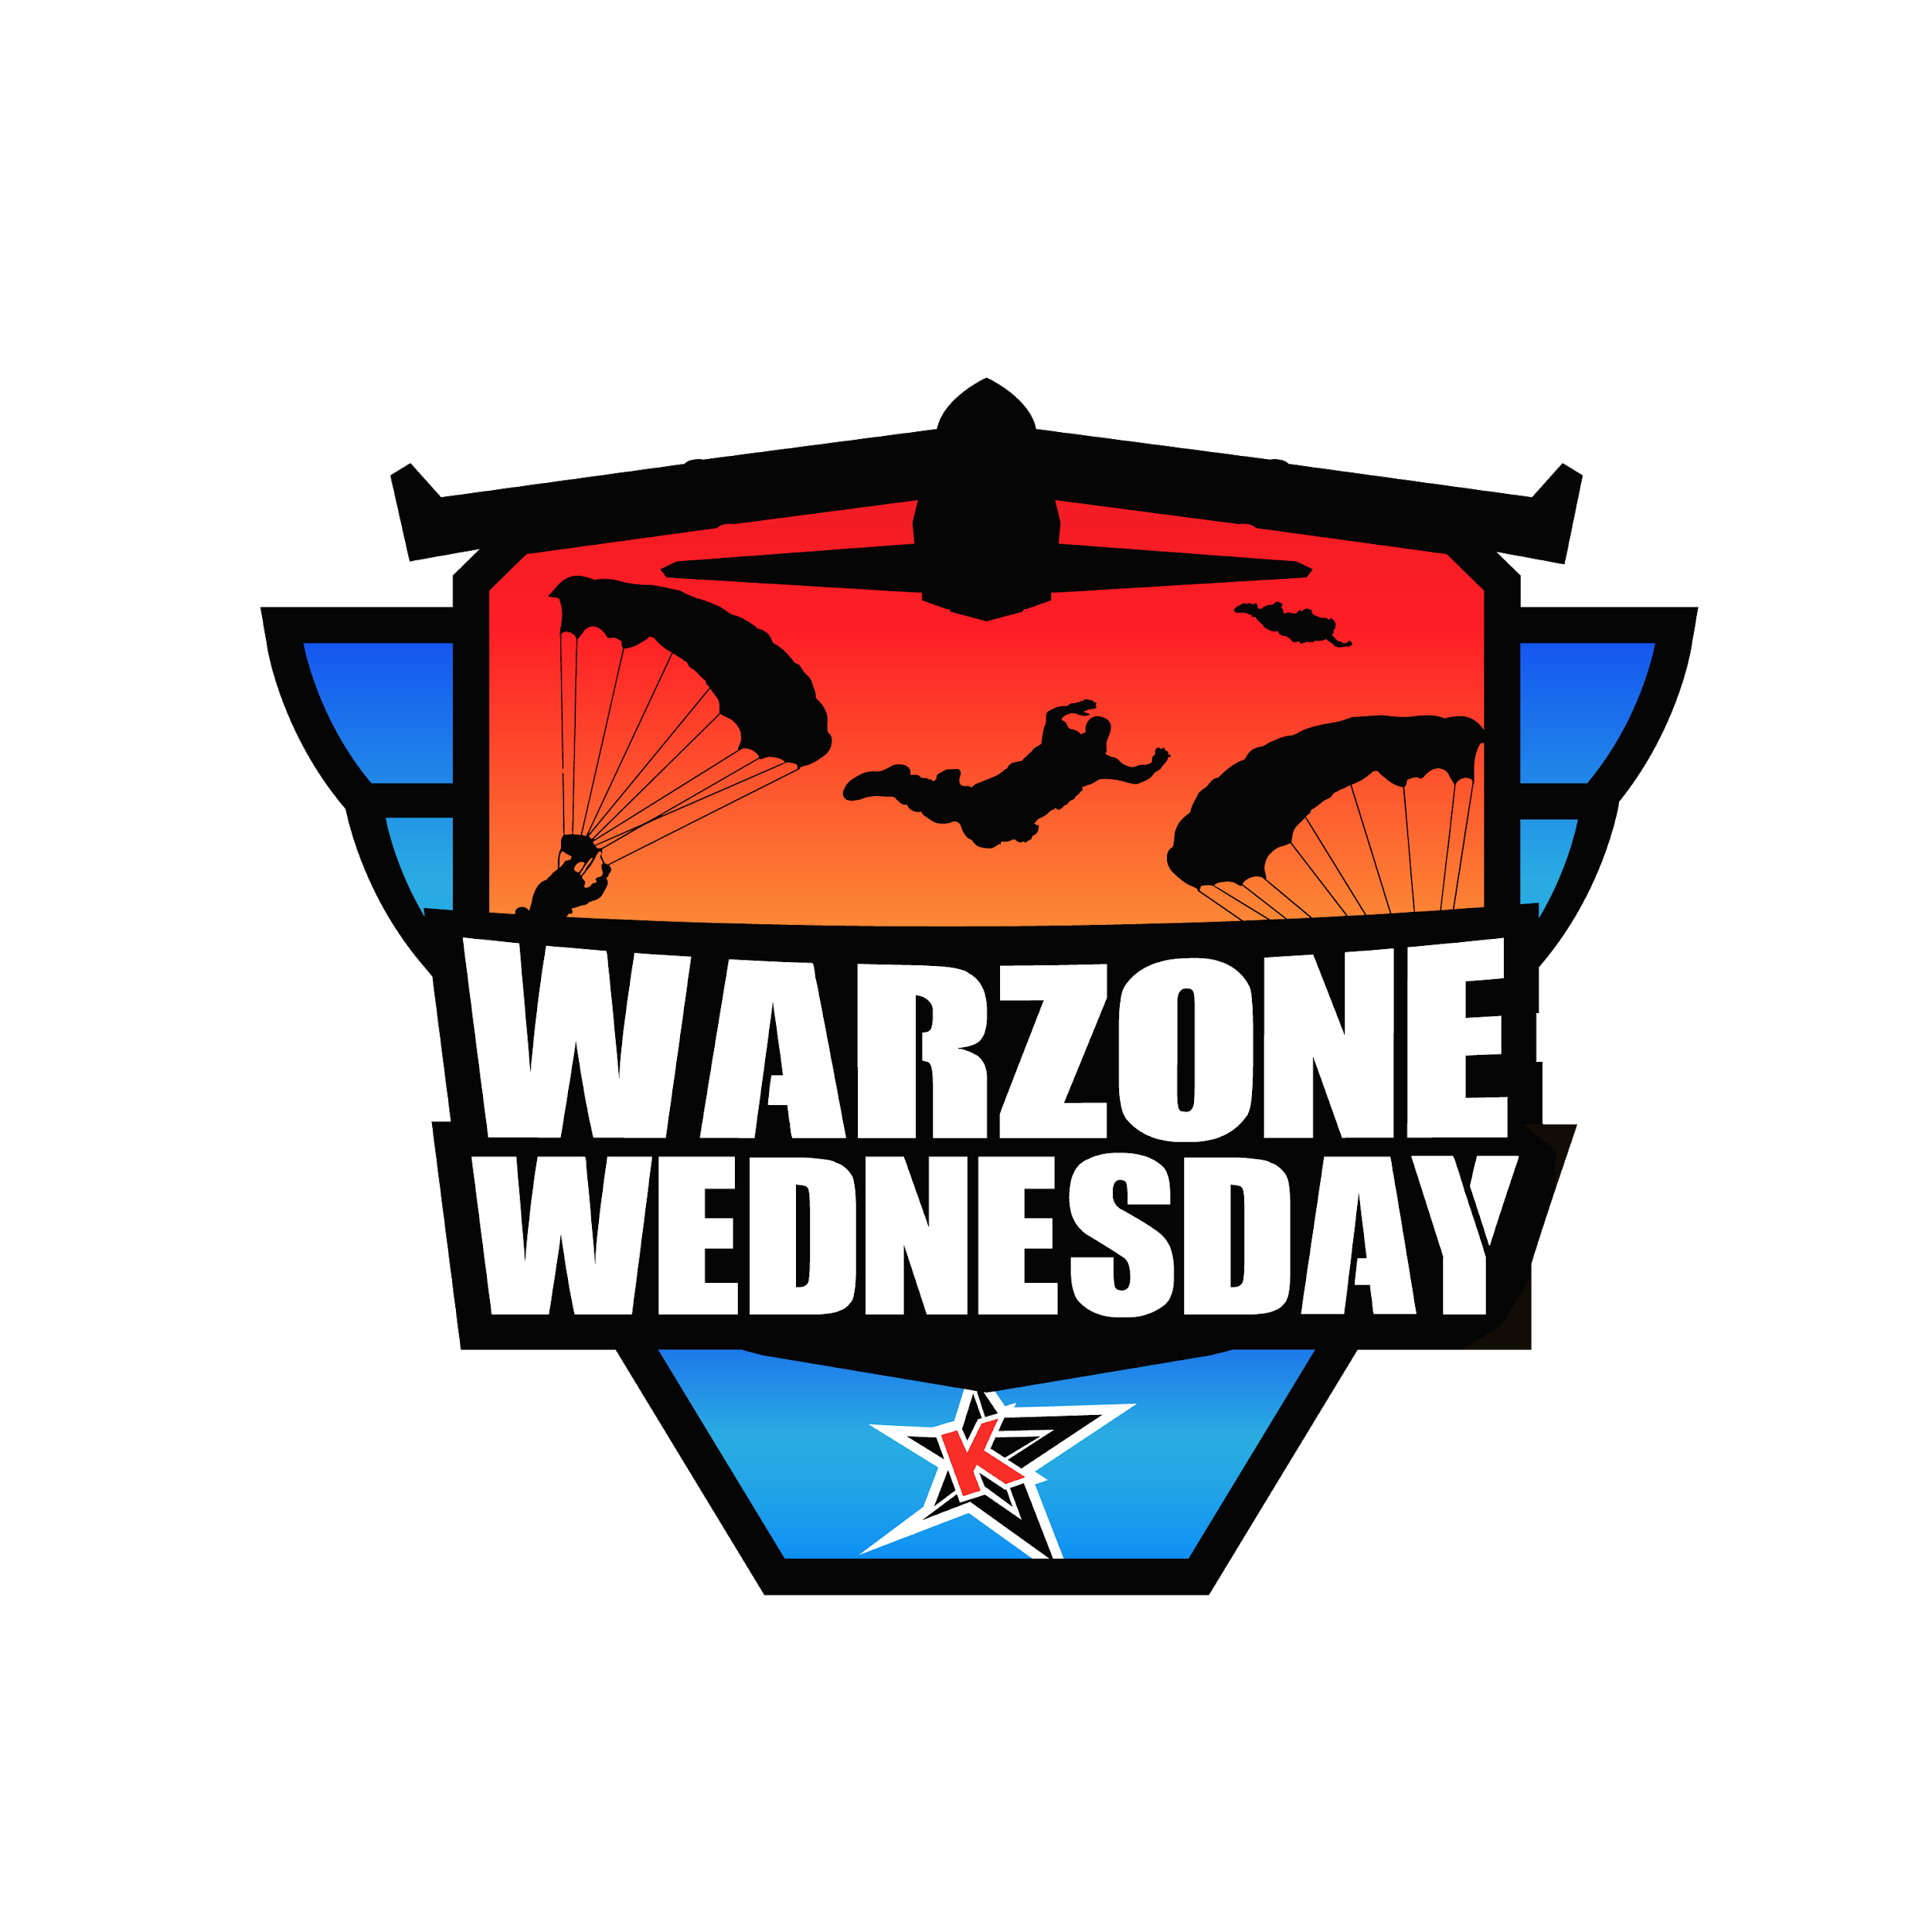 Call Of Duty Warzone Wednesdays Week 7 Time Bracket And Where To Watch